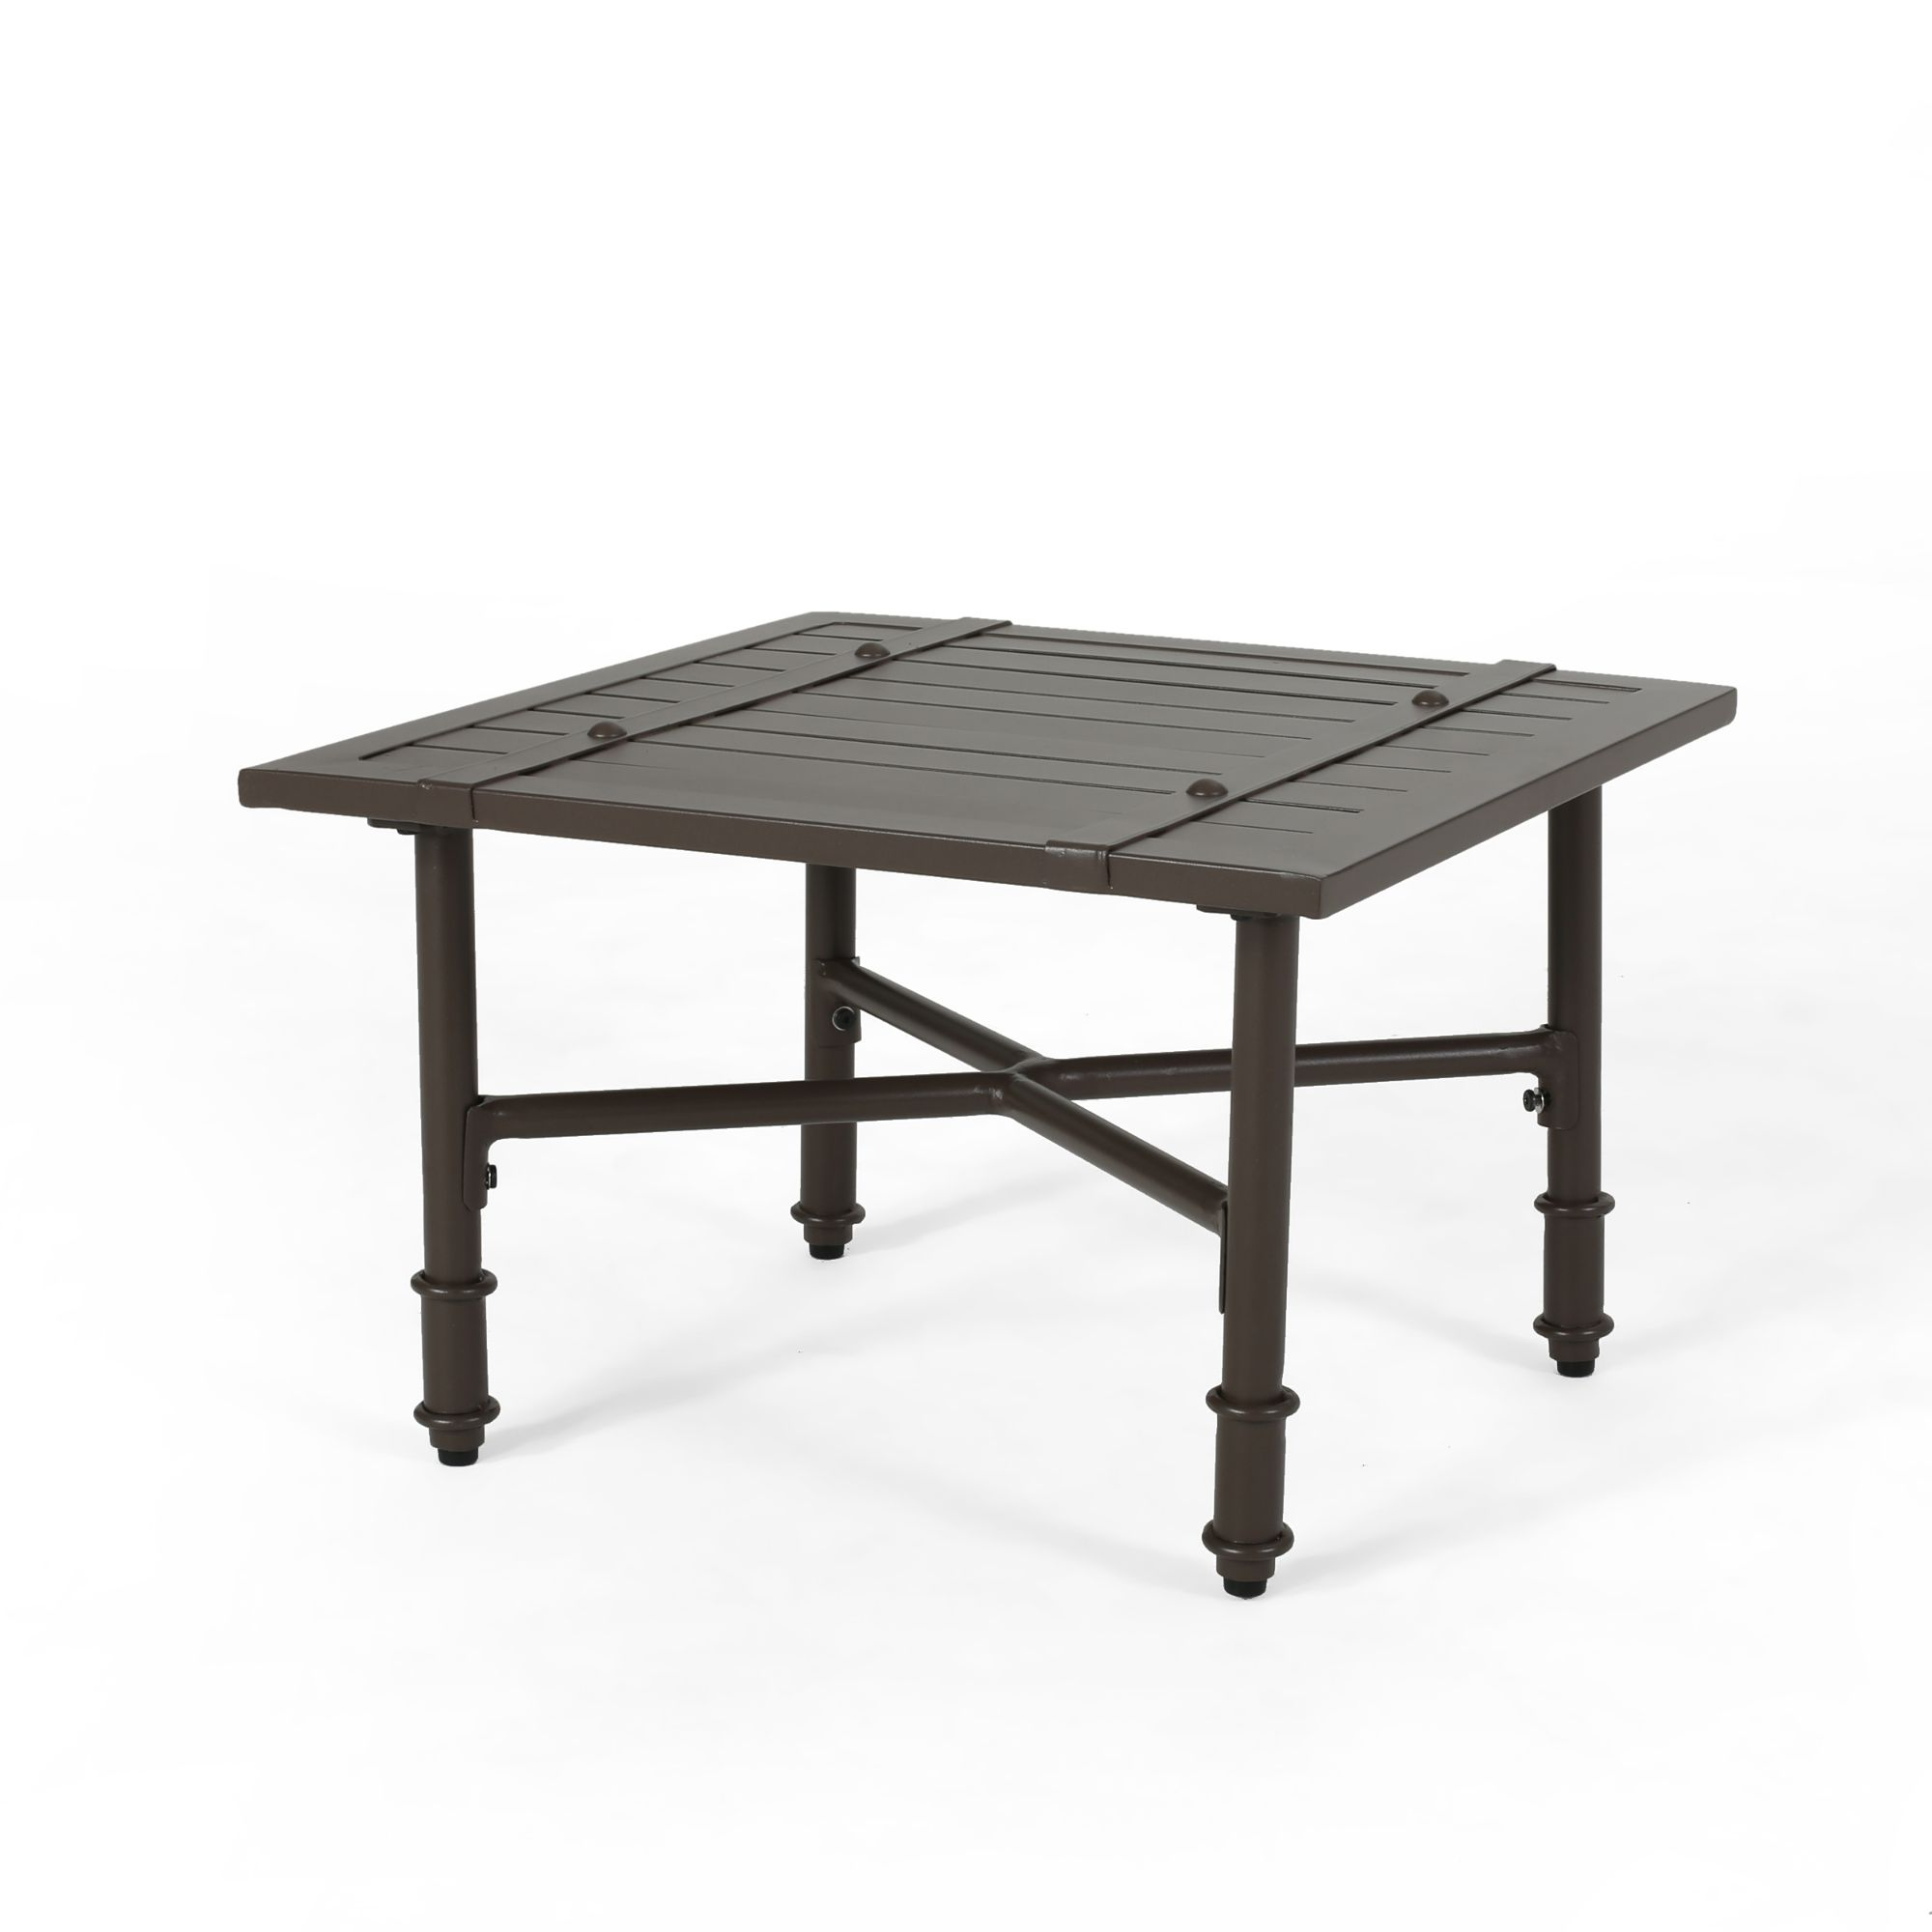 22 brown traditional square outdoor patio side table